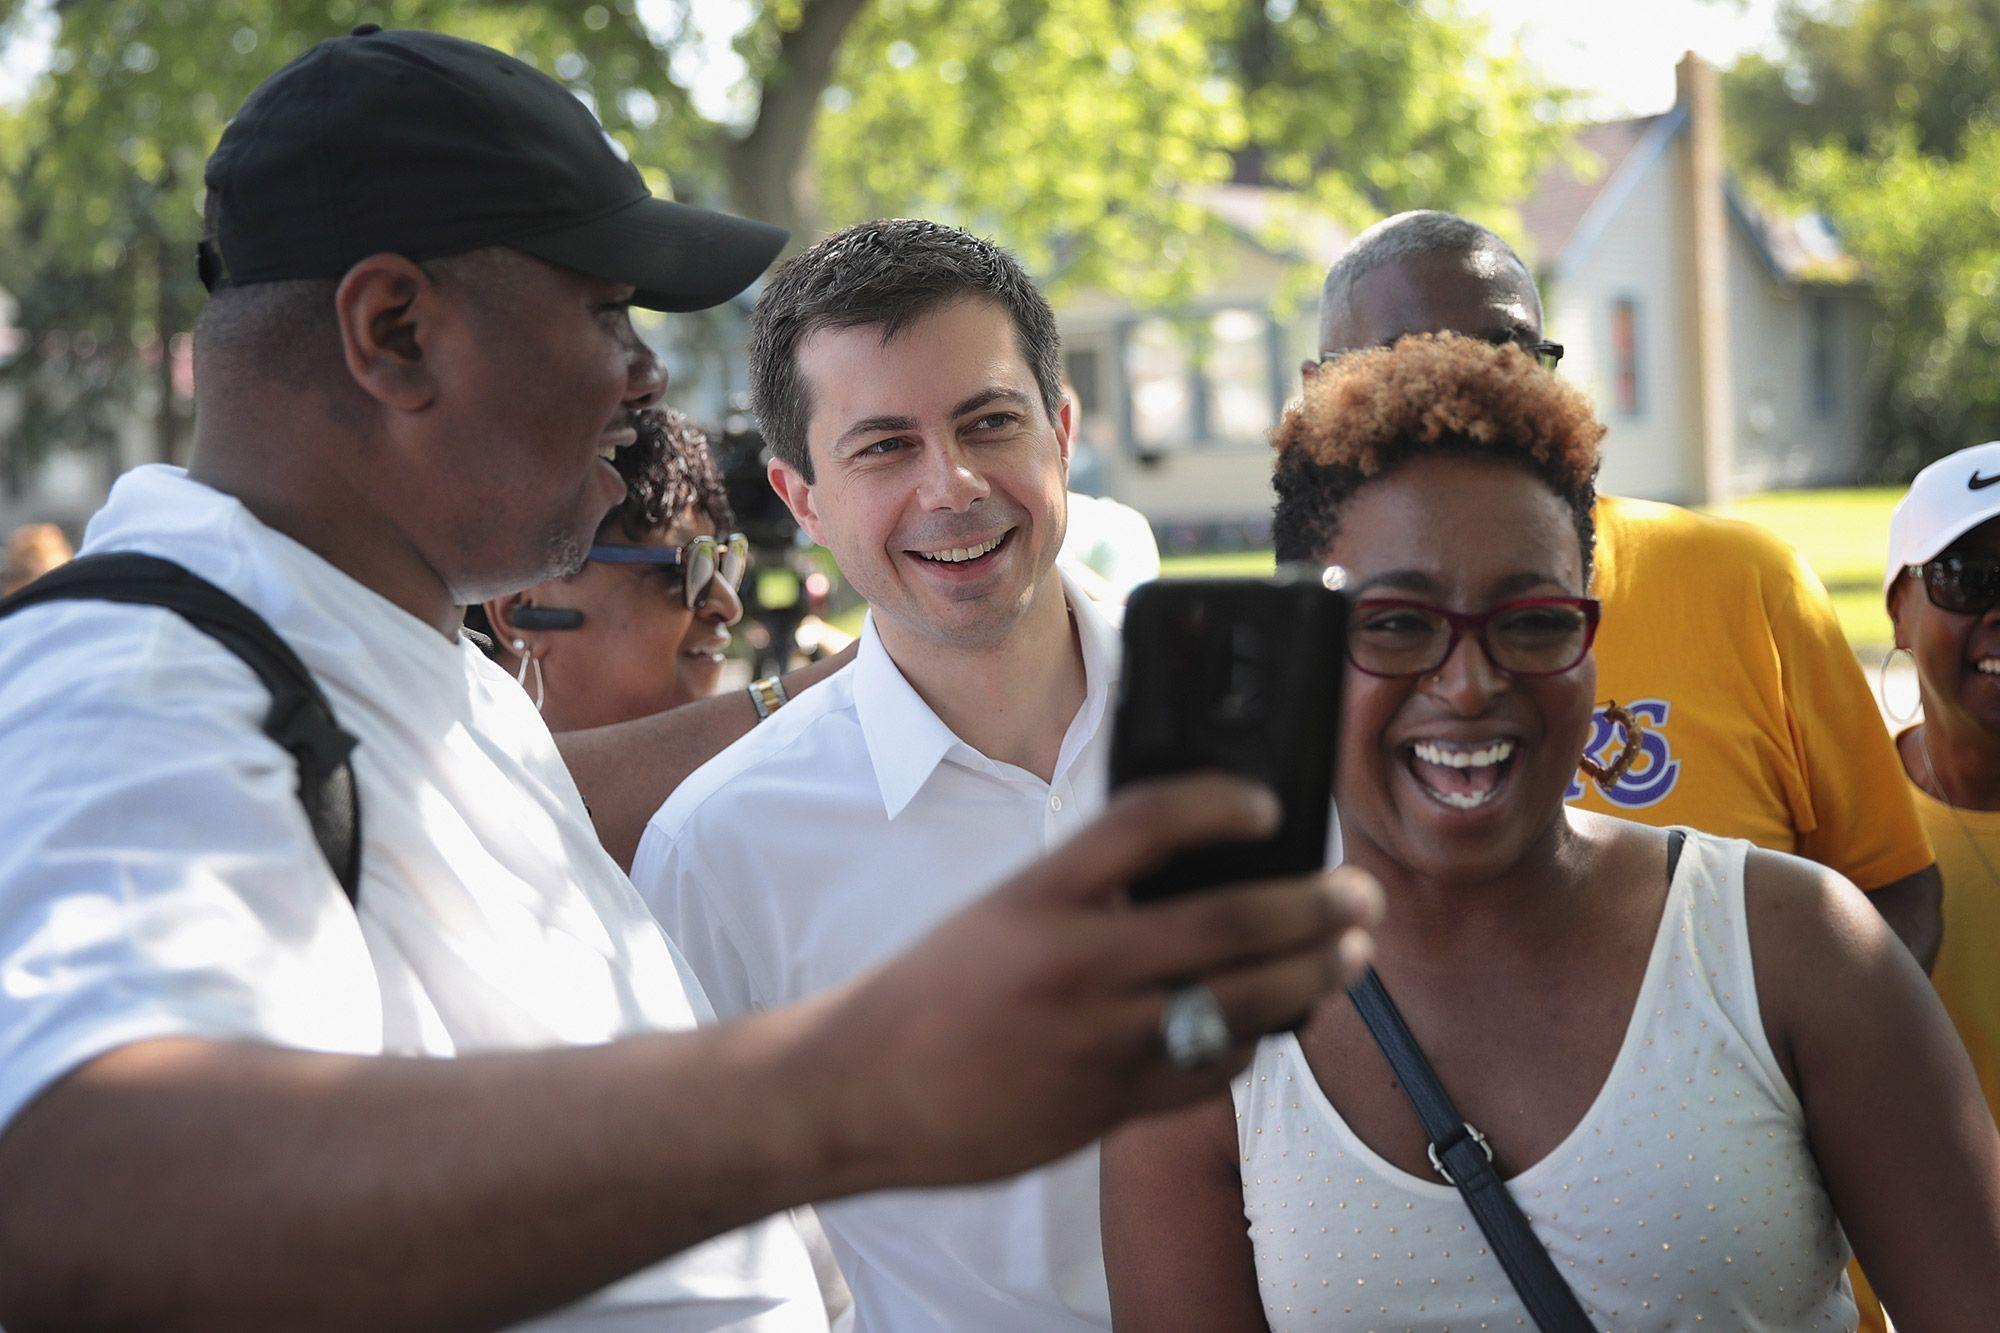 2020 candidate Buttigieg says he raised US$24M in 2nd quarter